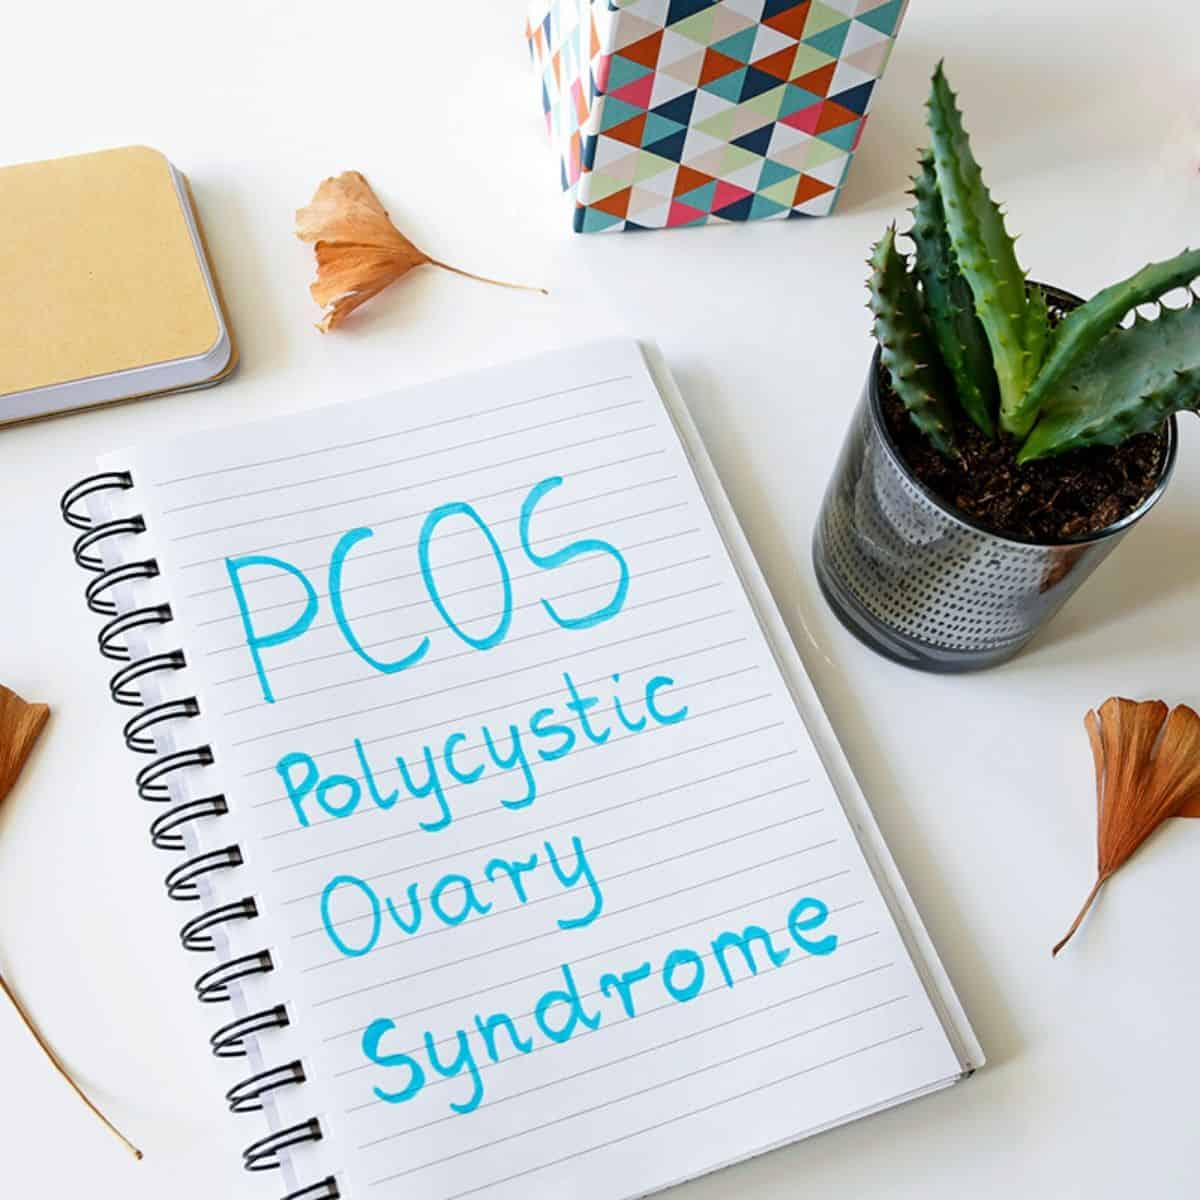 """notebook page with the words """"PCOS Polycystic Ovary Syndrome"""" written on it"""